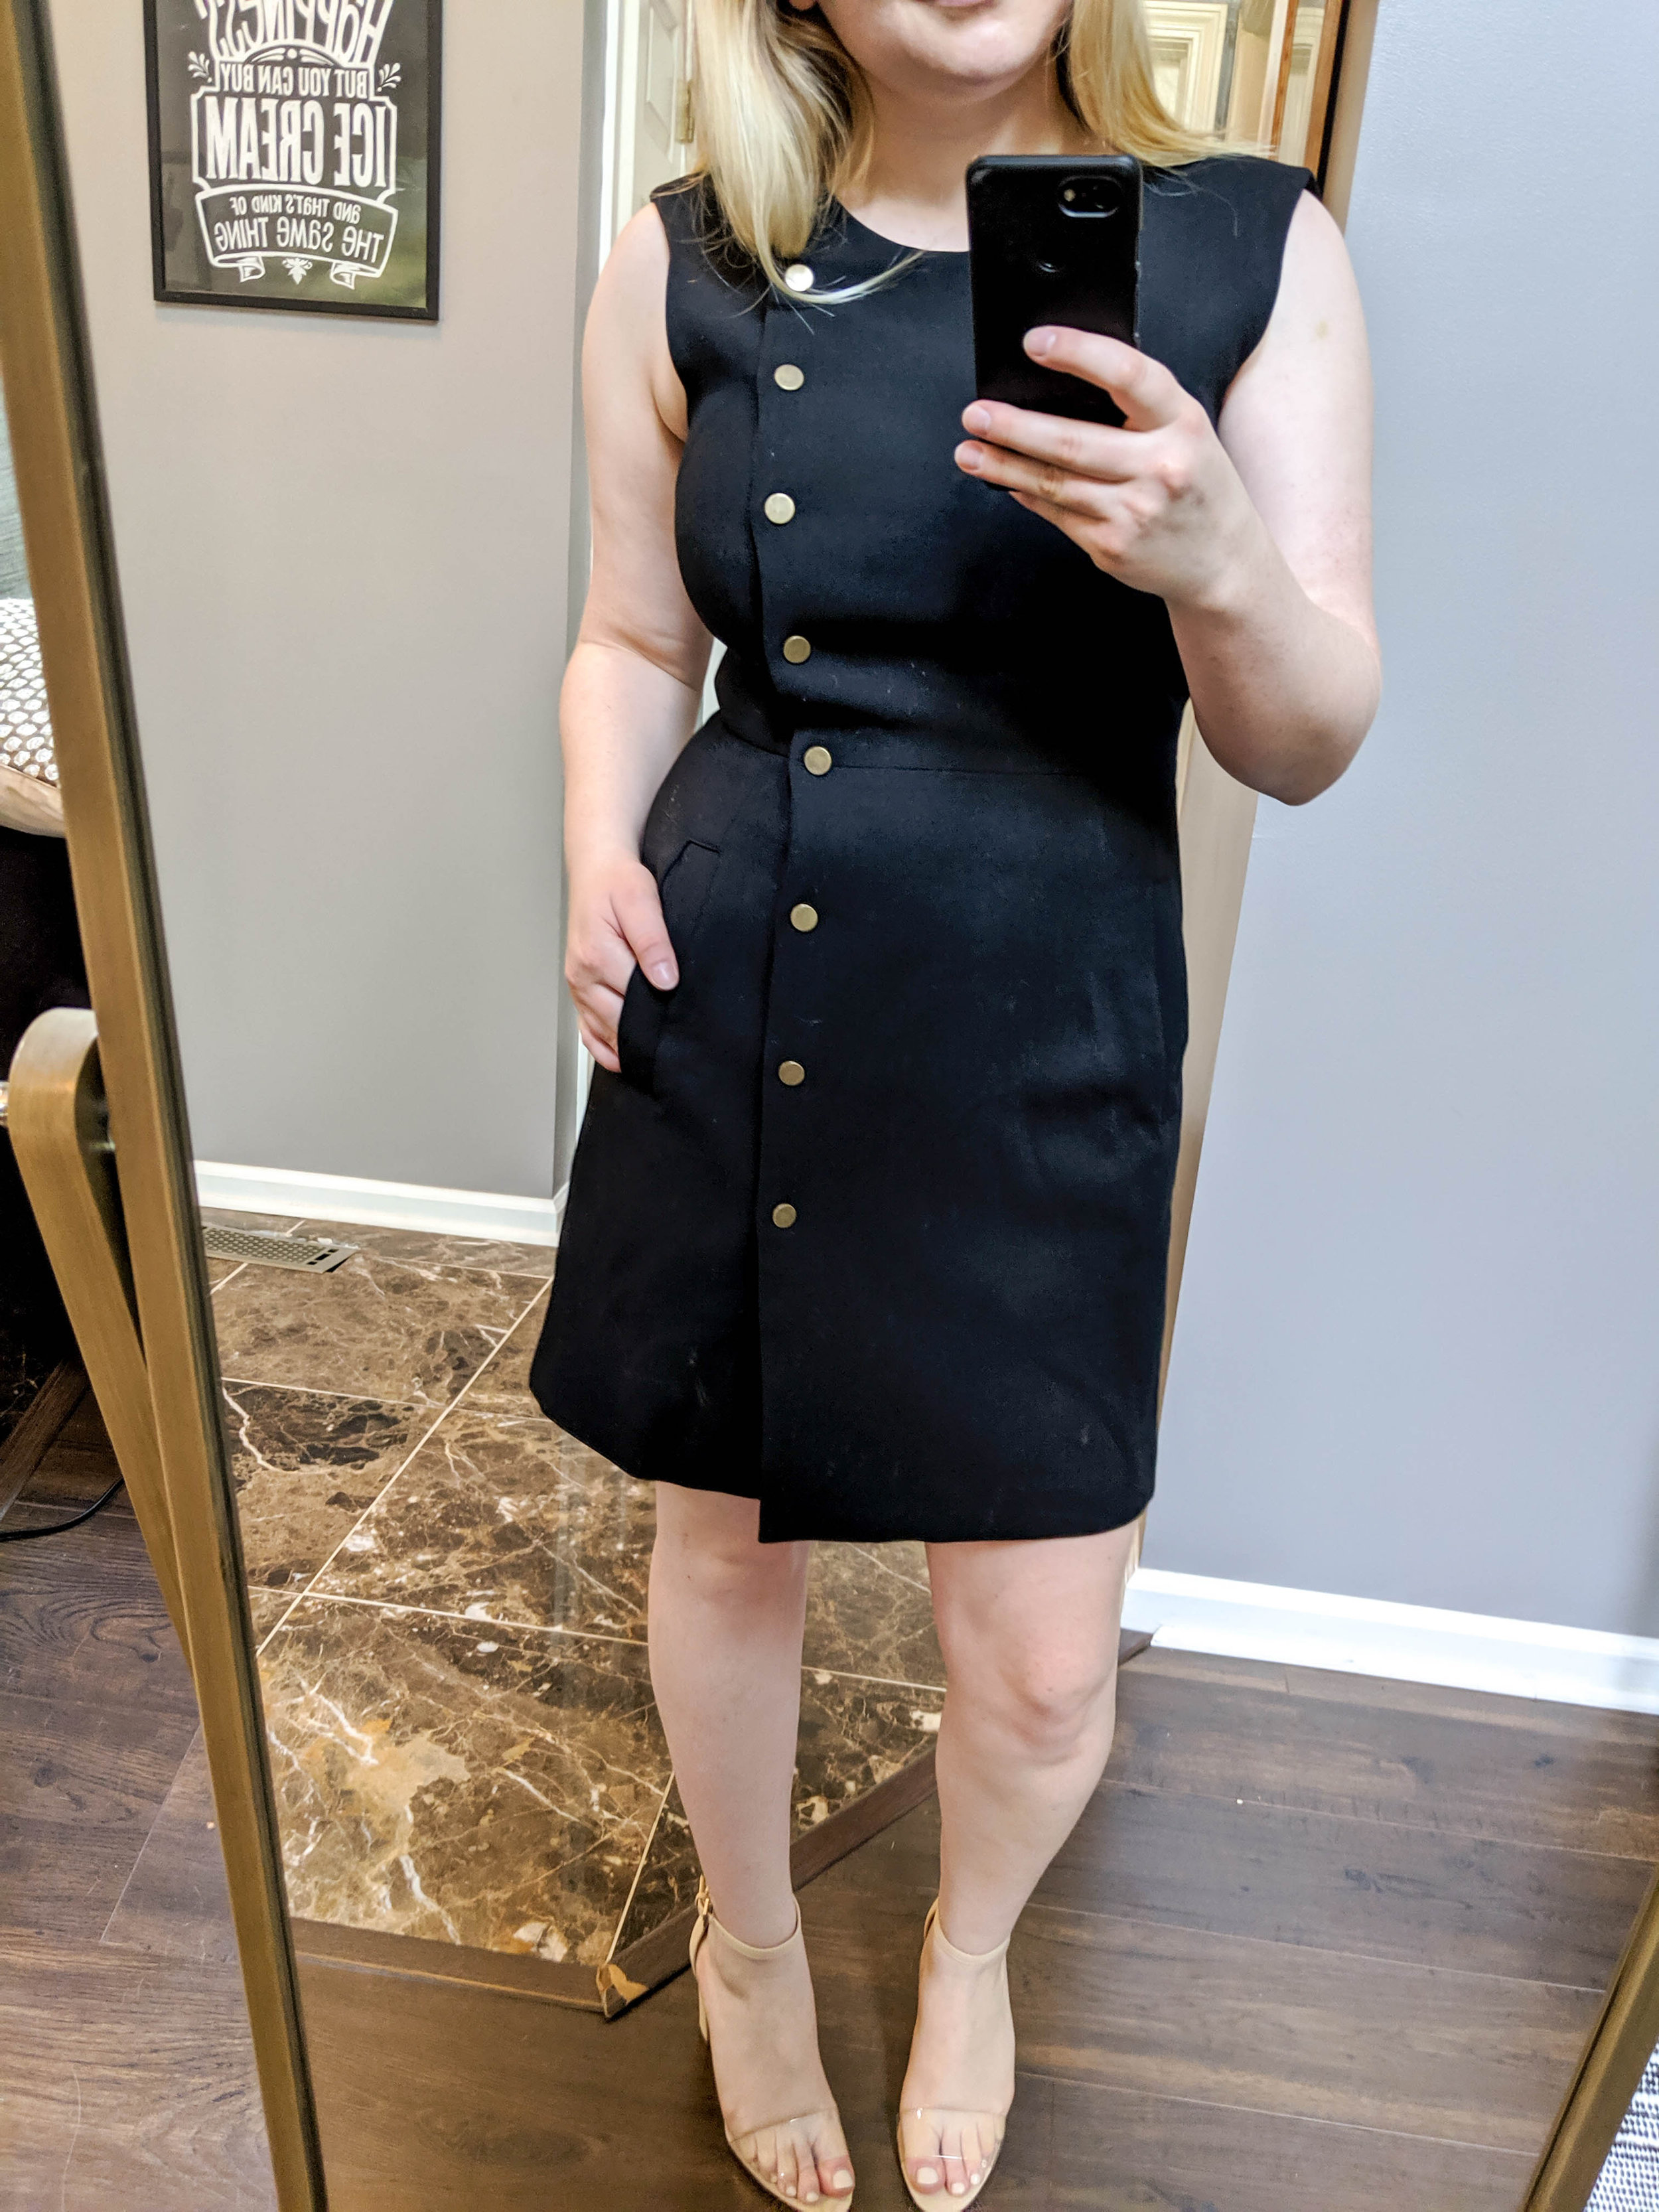 Maggie a la Mode 2019 Nordstrom Anniversary Sale Review Try On Real Body Veronica Beard Cutler Dress, Vince Camuto Corlina Ankle Strap Sandal